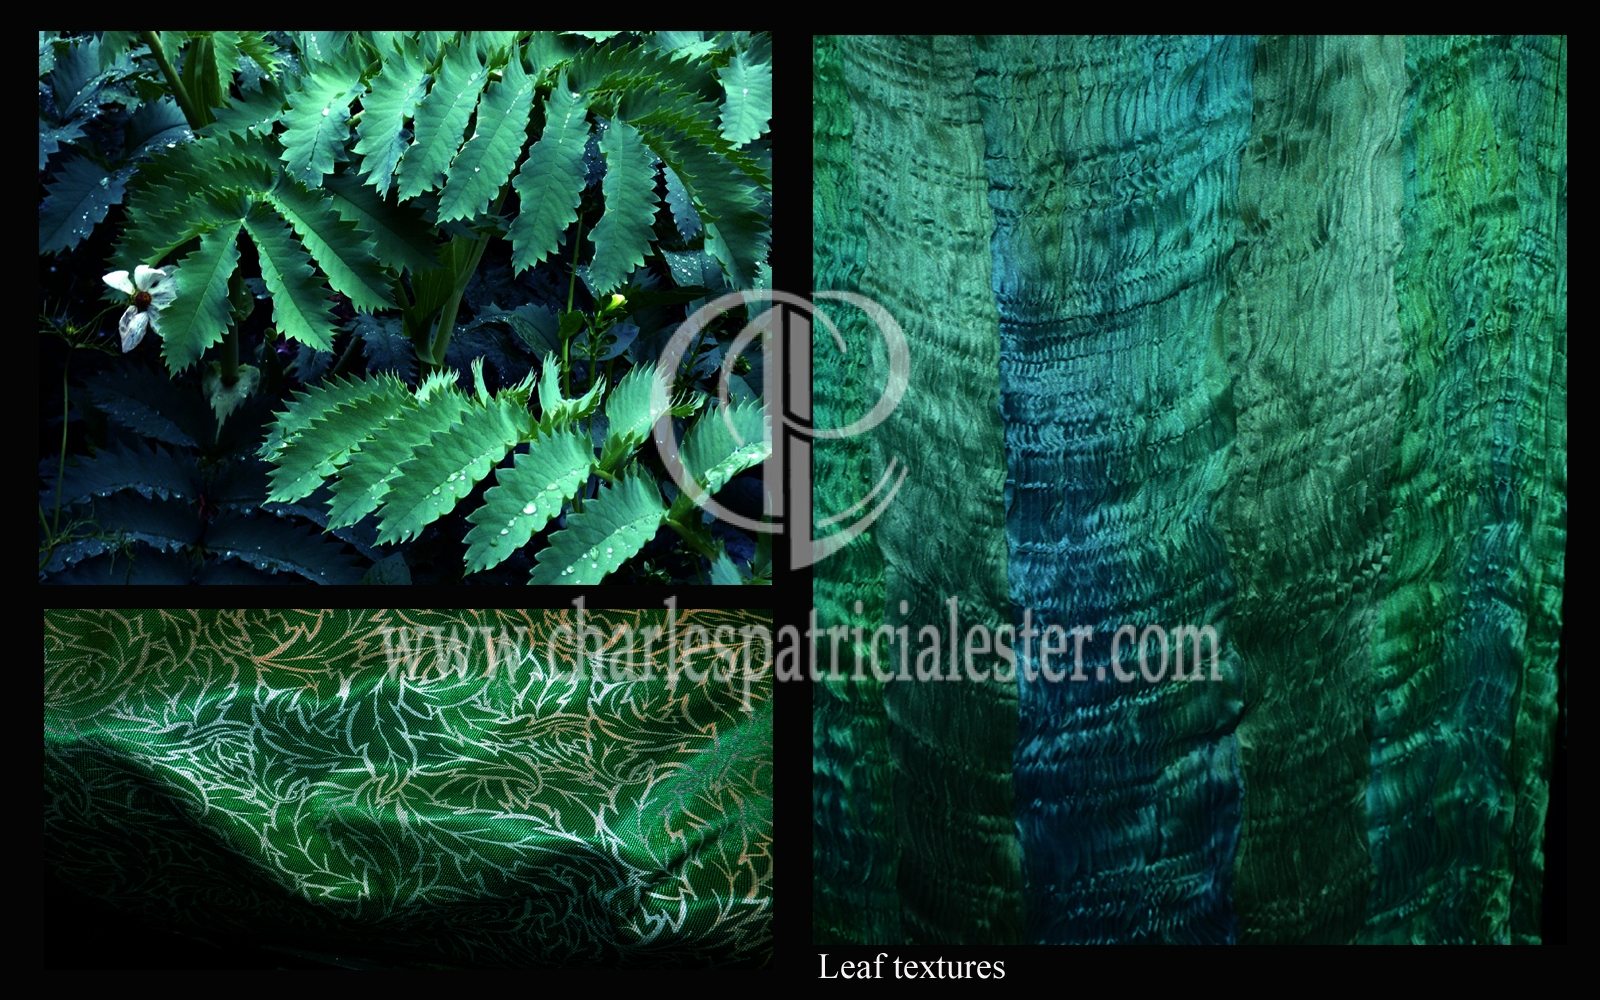 Leaf textures inspiration for textile designs